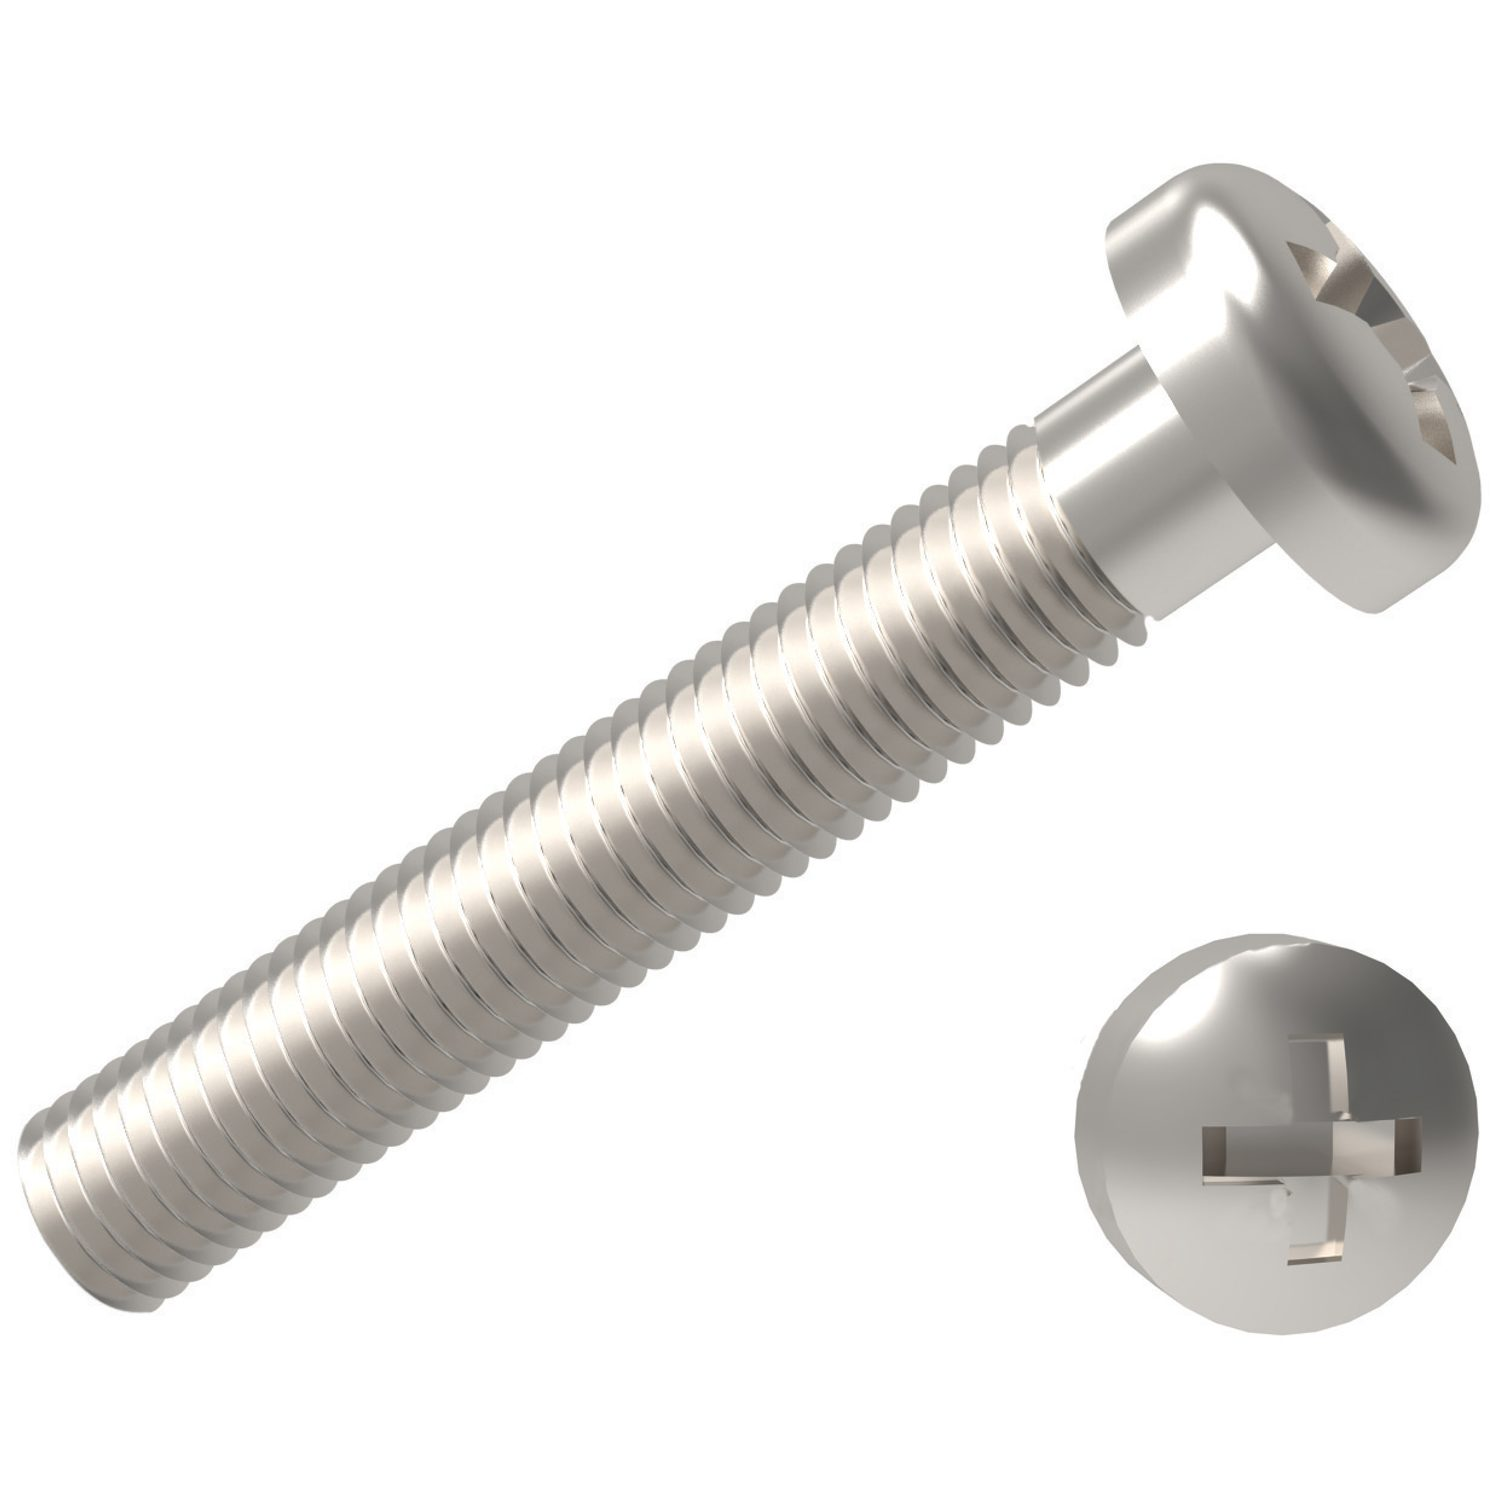 Product P0234.ZP, Phillips Pan Head Screws Phillips - steel, zinc-plated /